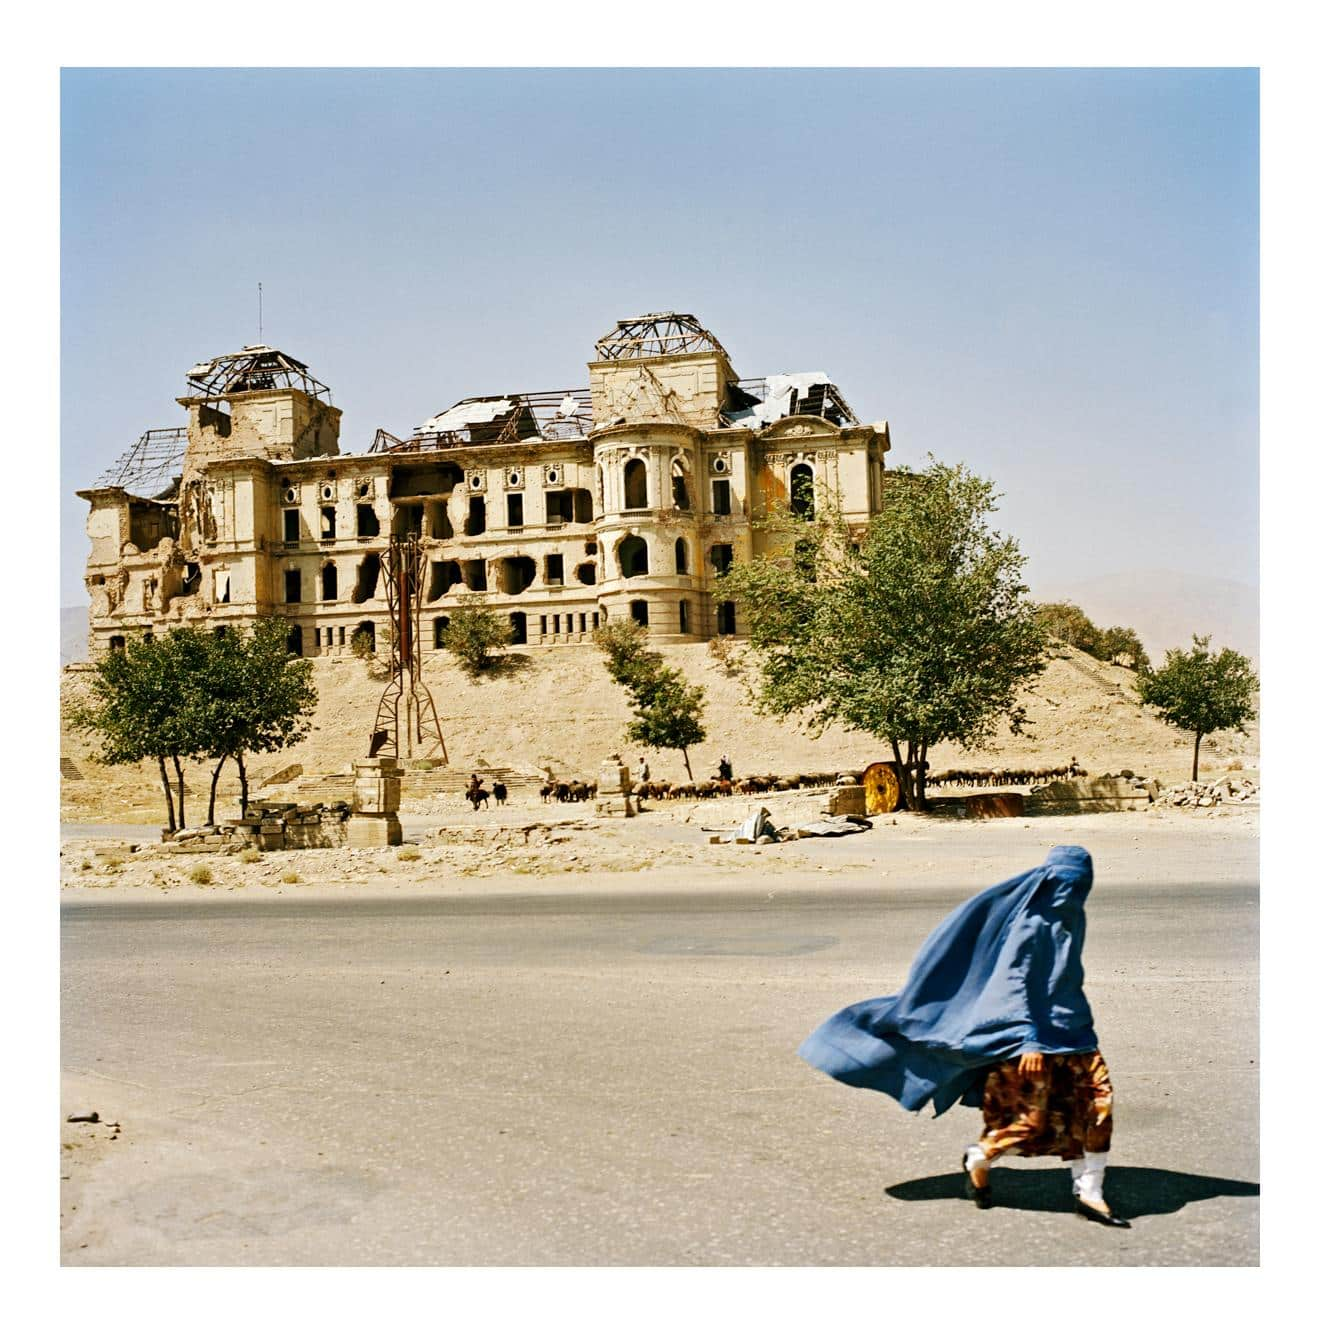 At the Darulaman Palace, Kabul, Afghanistan, August 2003, 2011, by Jonathan Becker